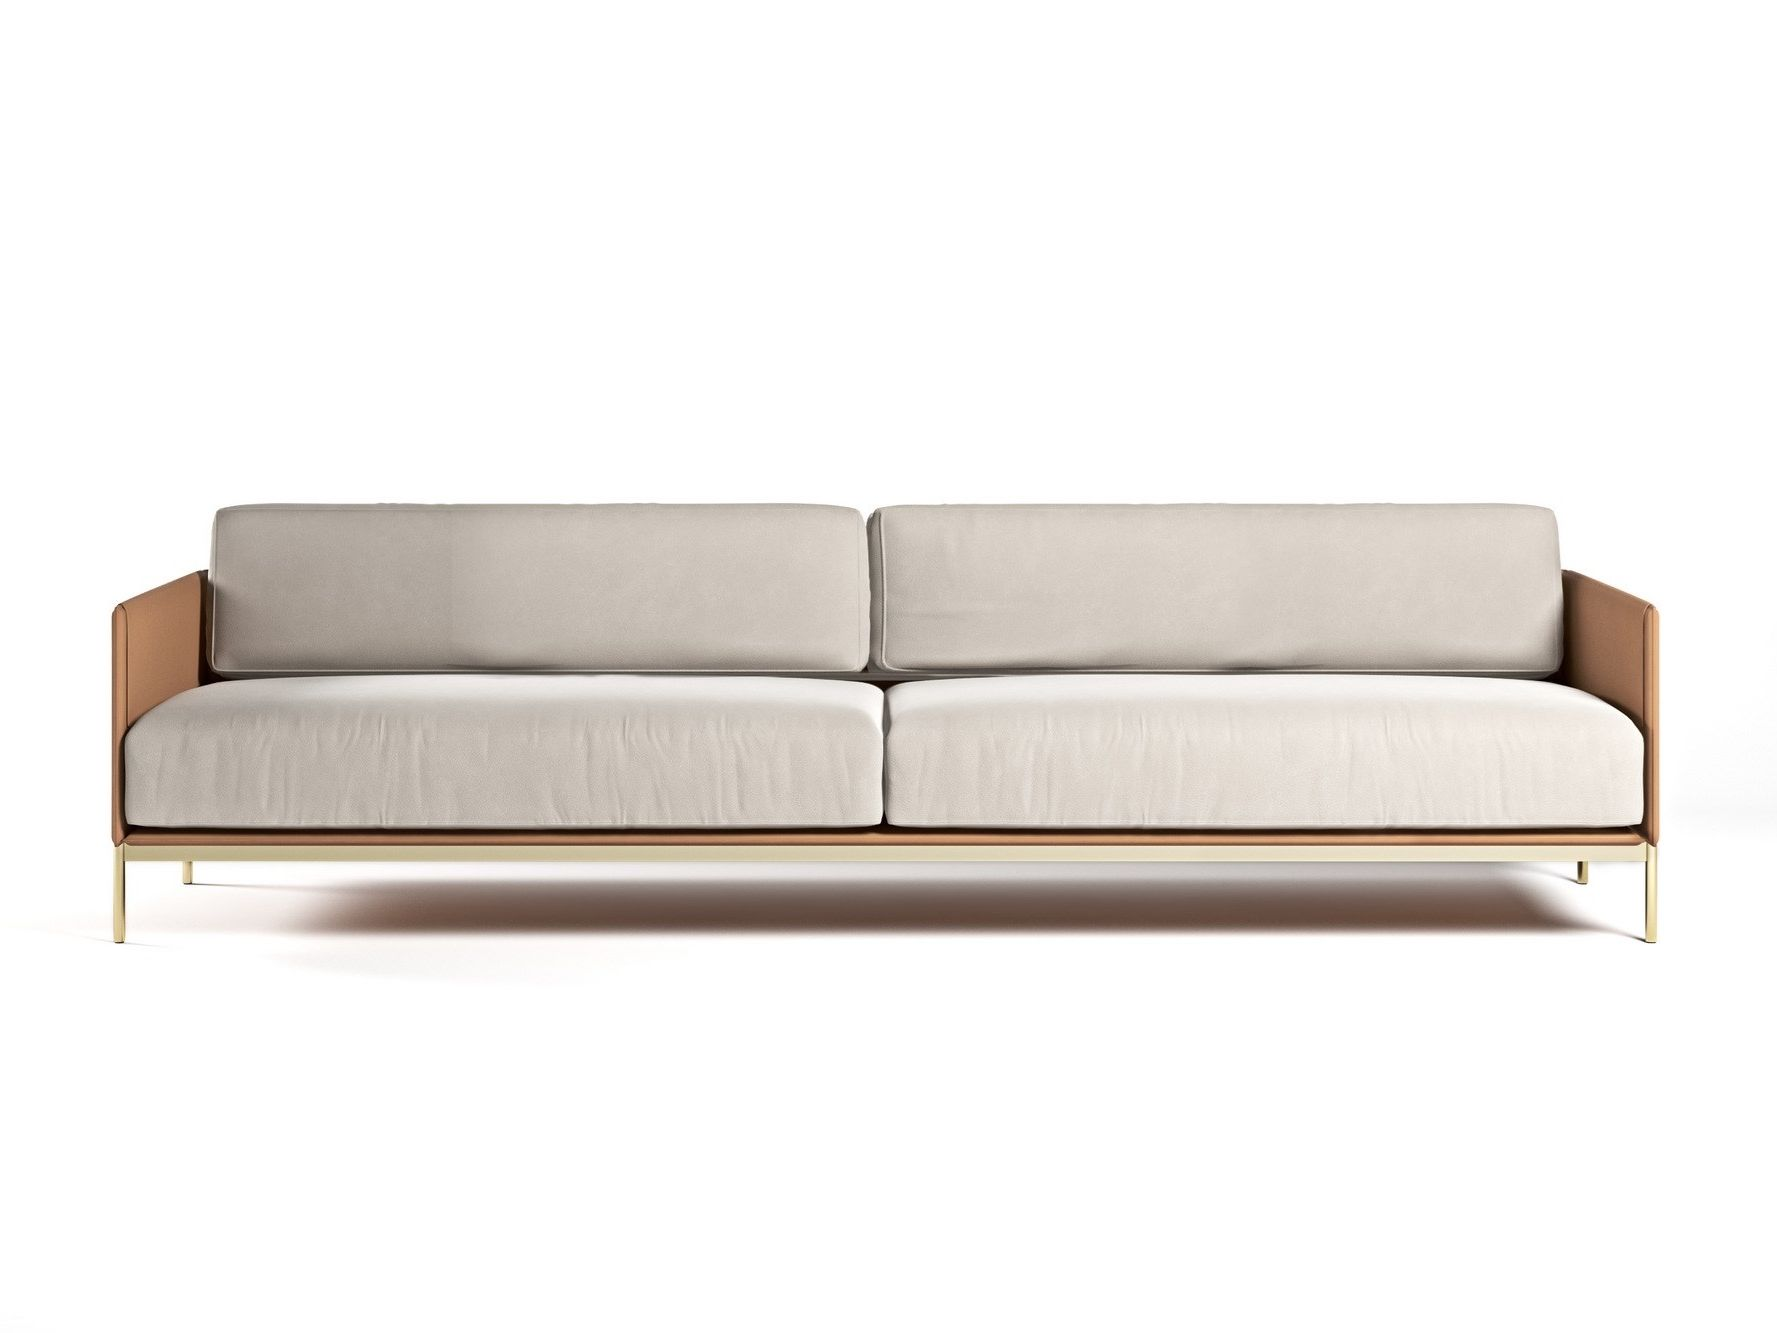 V215 沙发 By Aston Martin Furniture White Furniture Living Room Luxury Sofa